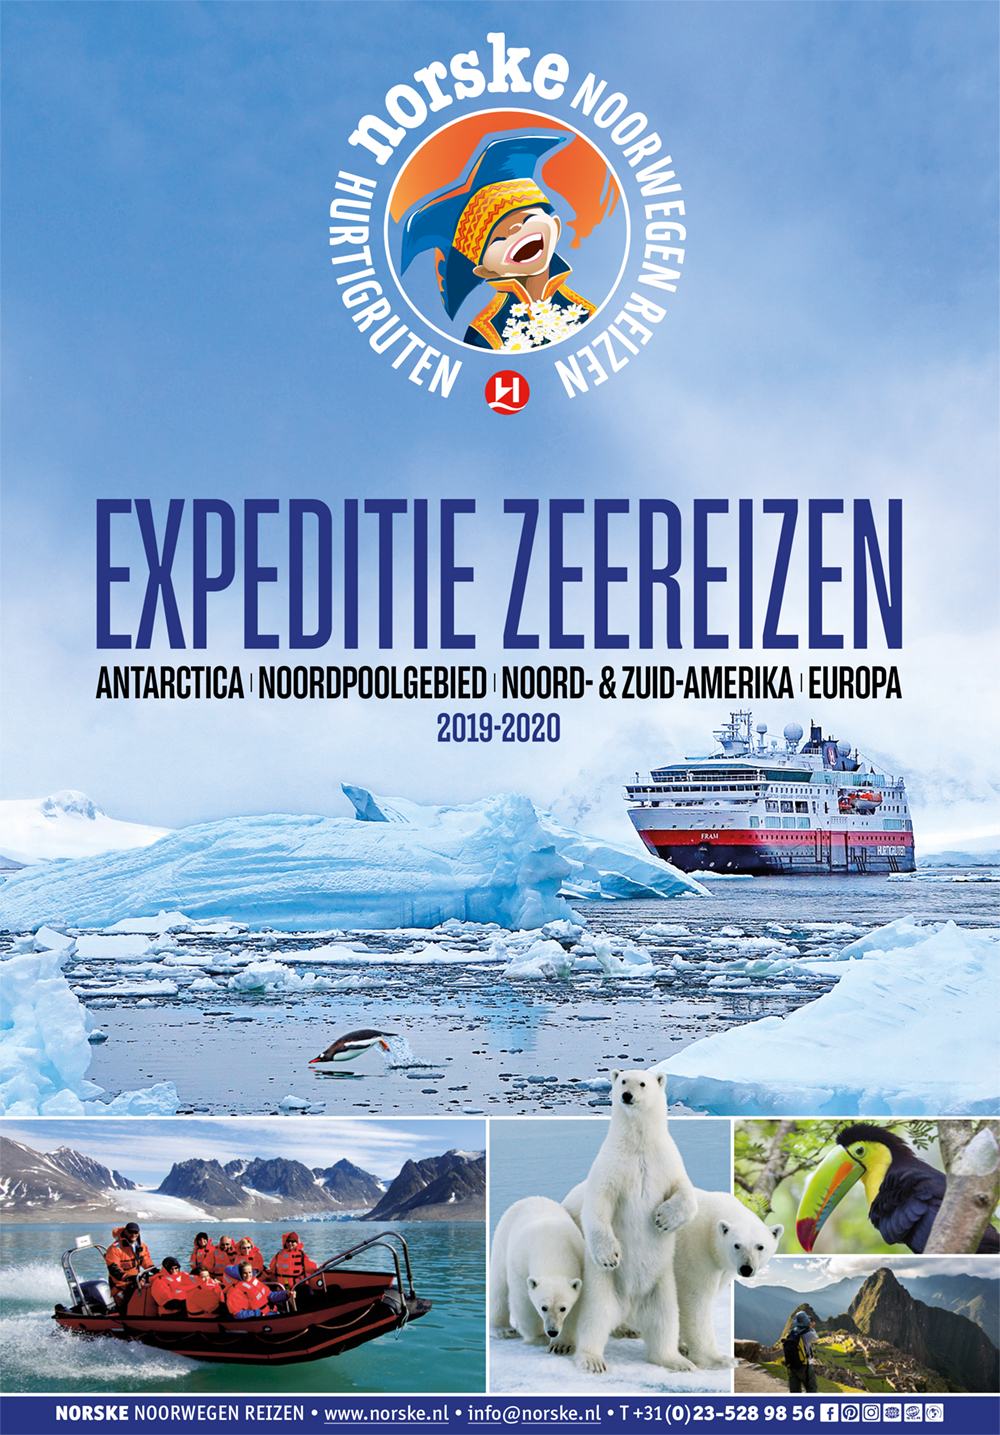 Hurtigruten Expeditie-Zeereizen 2019-2020